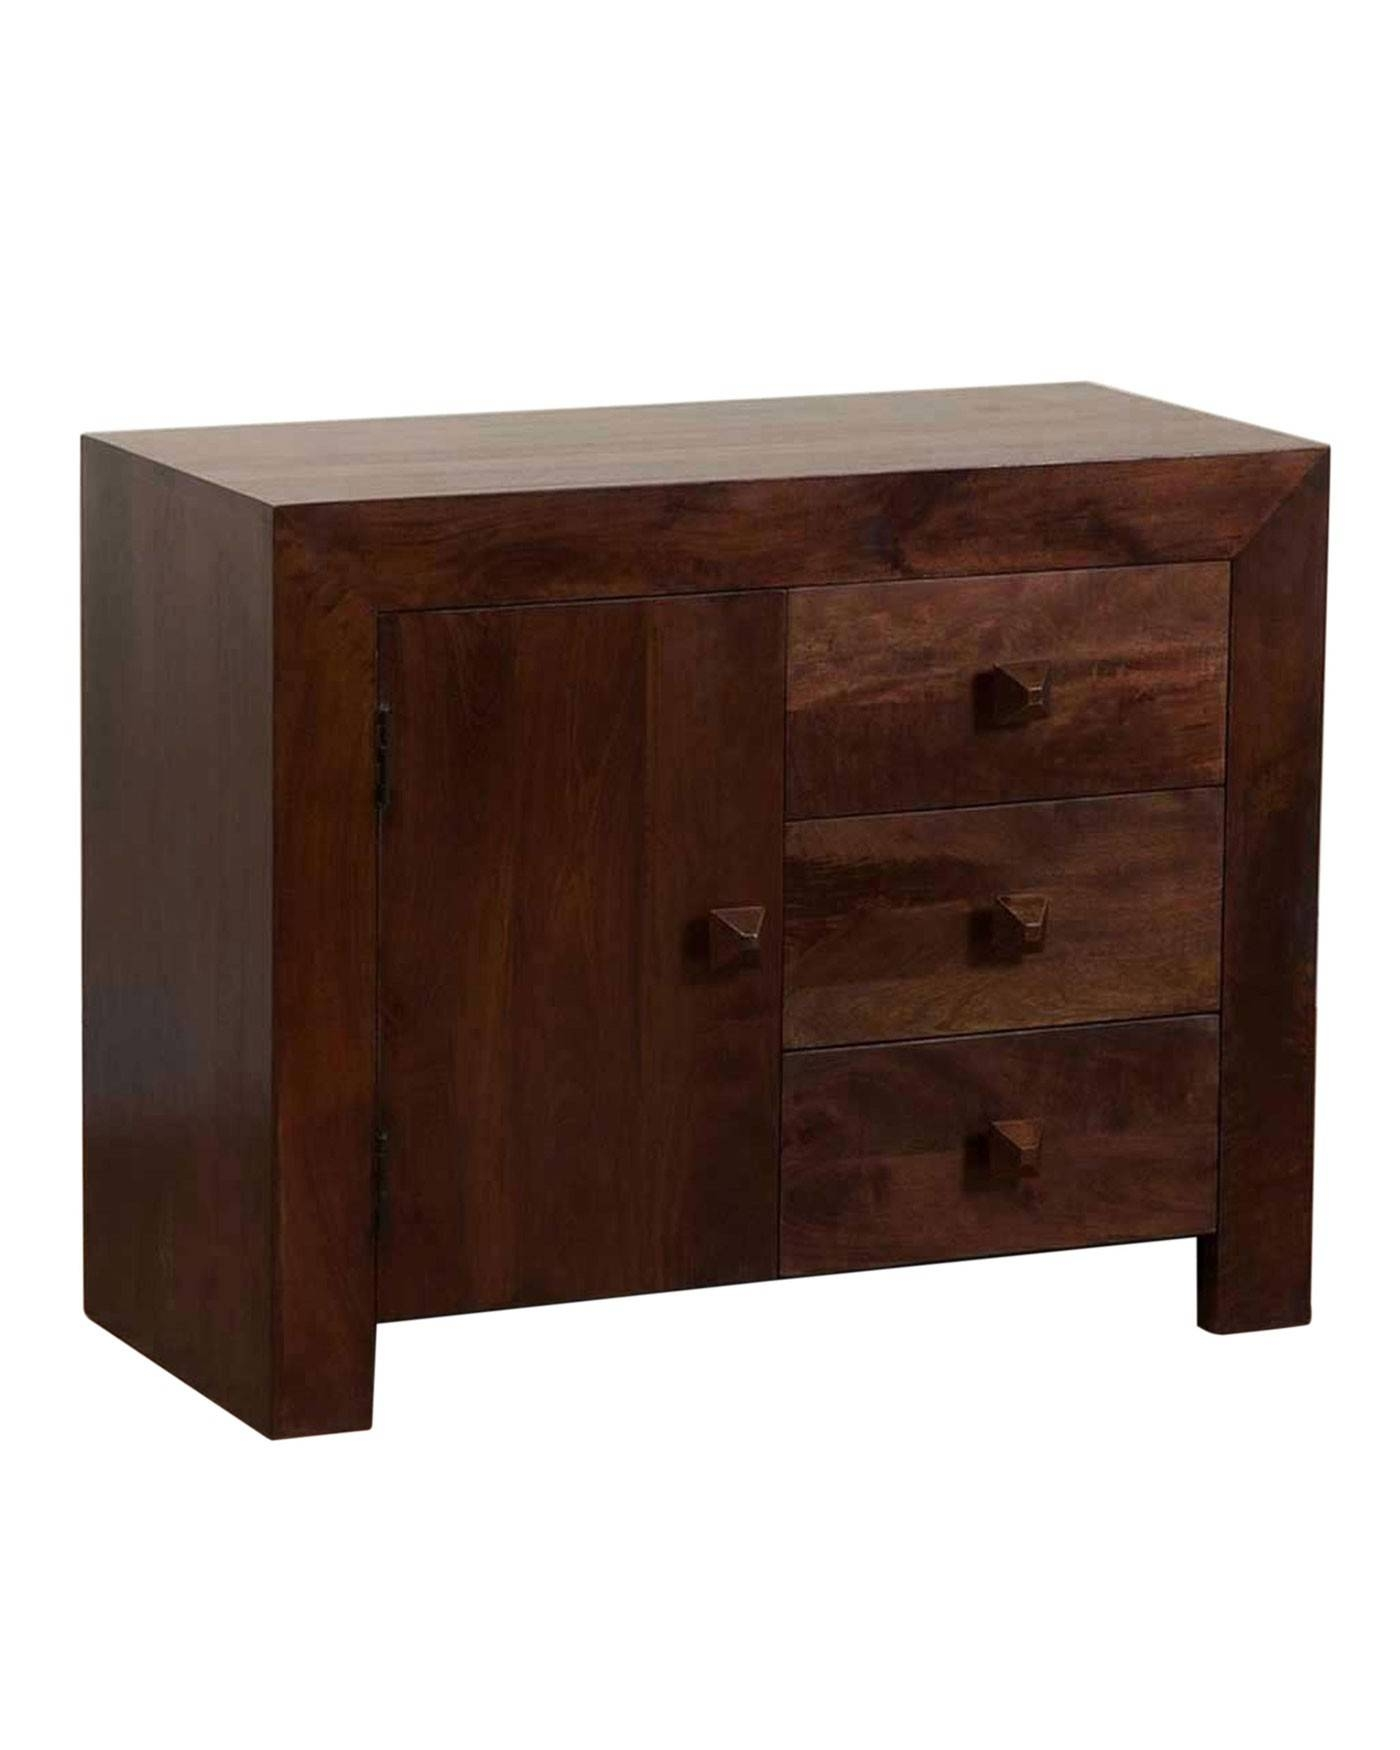 Dakota Small Sideboard With 3 Drawers Dark Shade - Homescapes throughout Dark Wood Sideboards (Image 1 of 15)